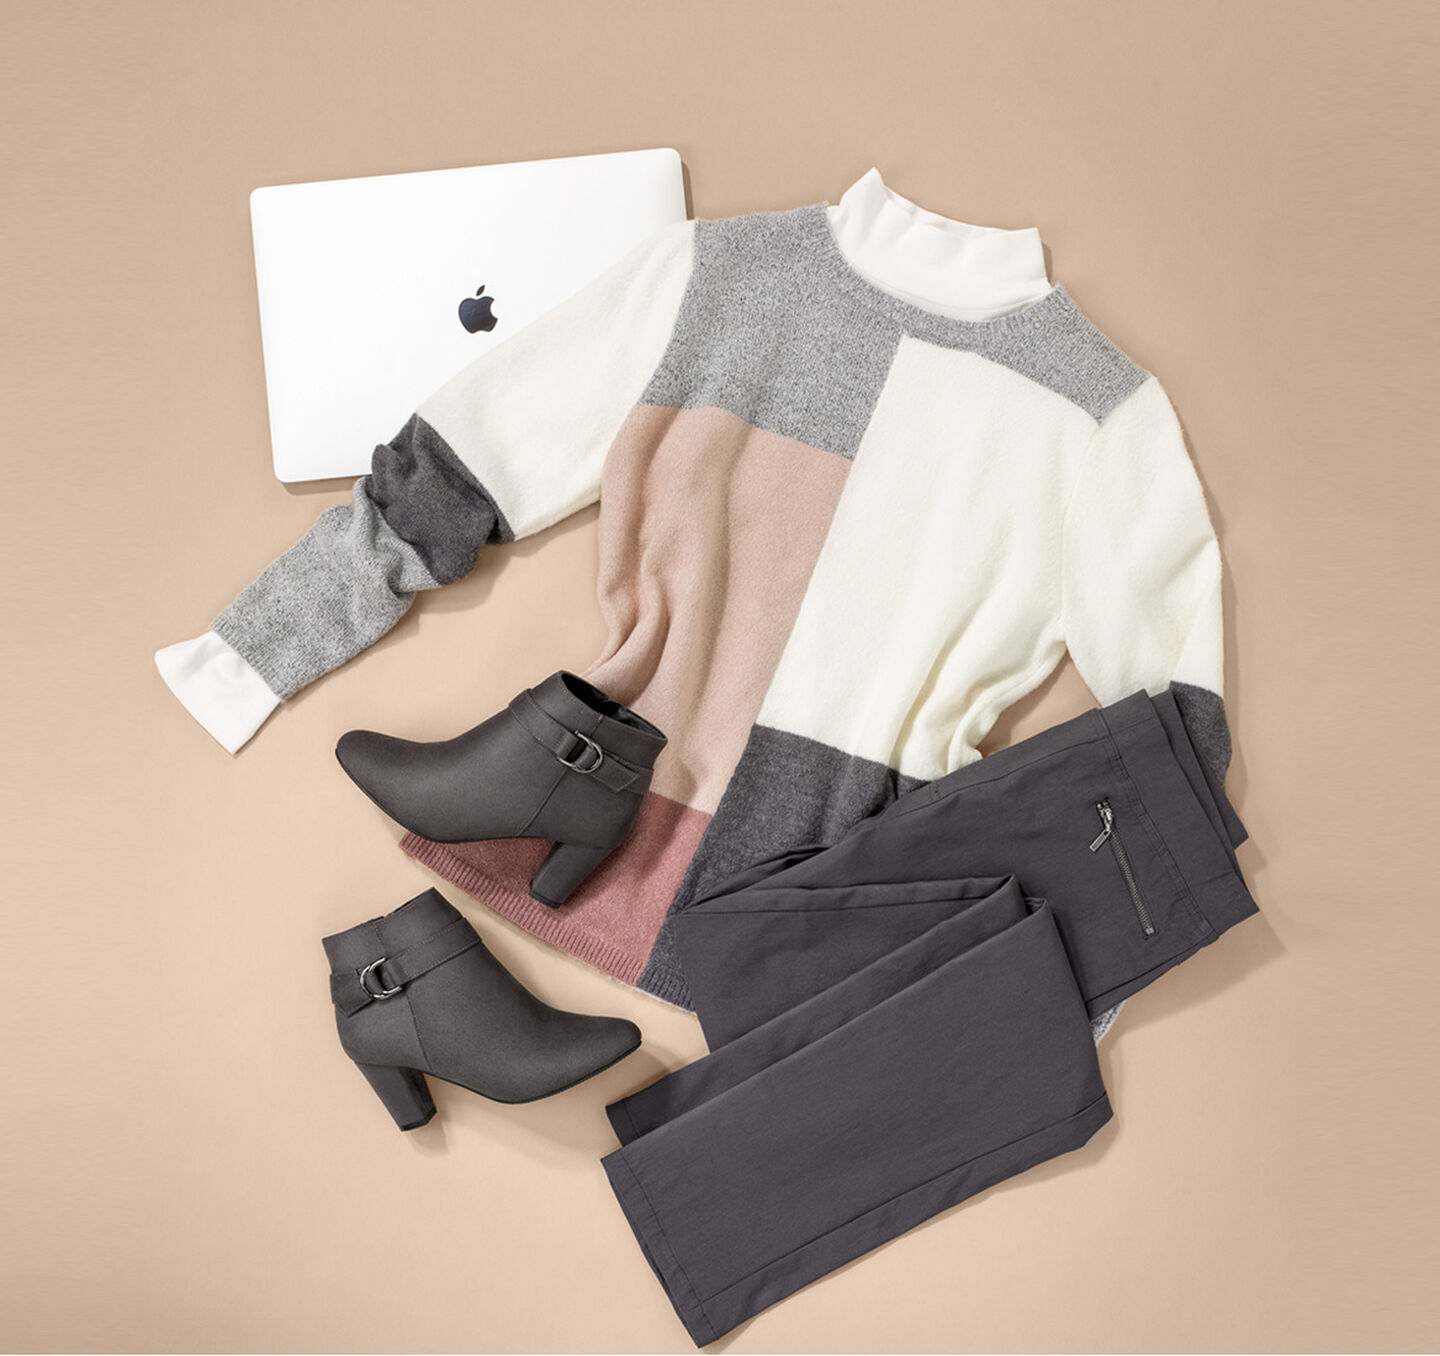 The Colourblock Jumper | Colourblock Colourblock Jumper | Super Stretchy Pull-on Trousers | Comfort Heeled Boots | By Cotton Traders